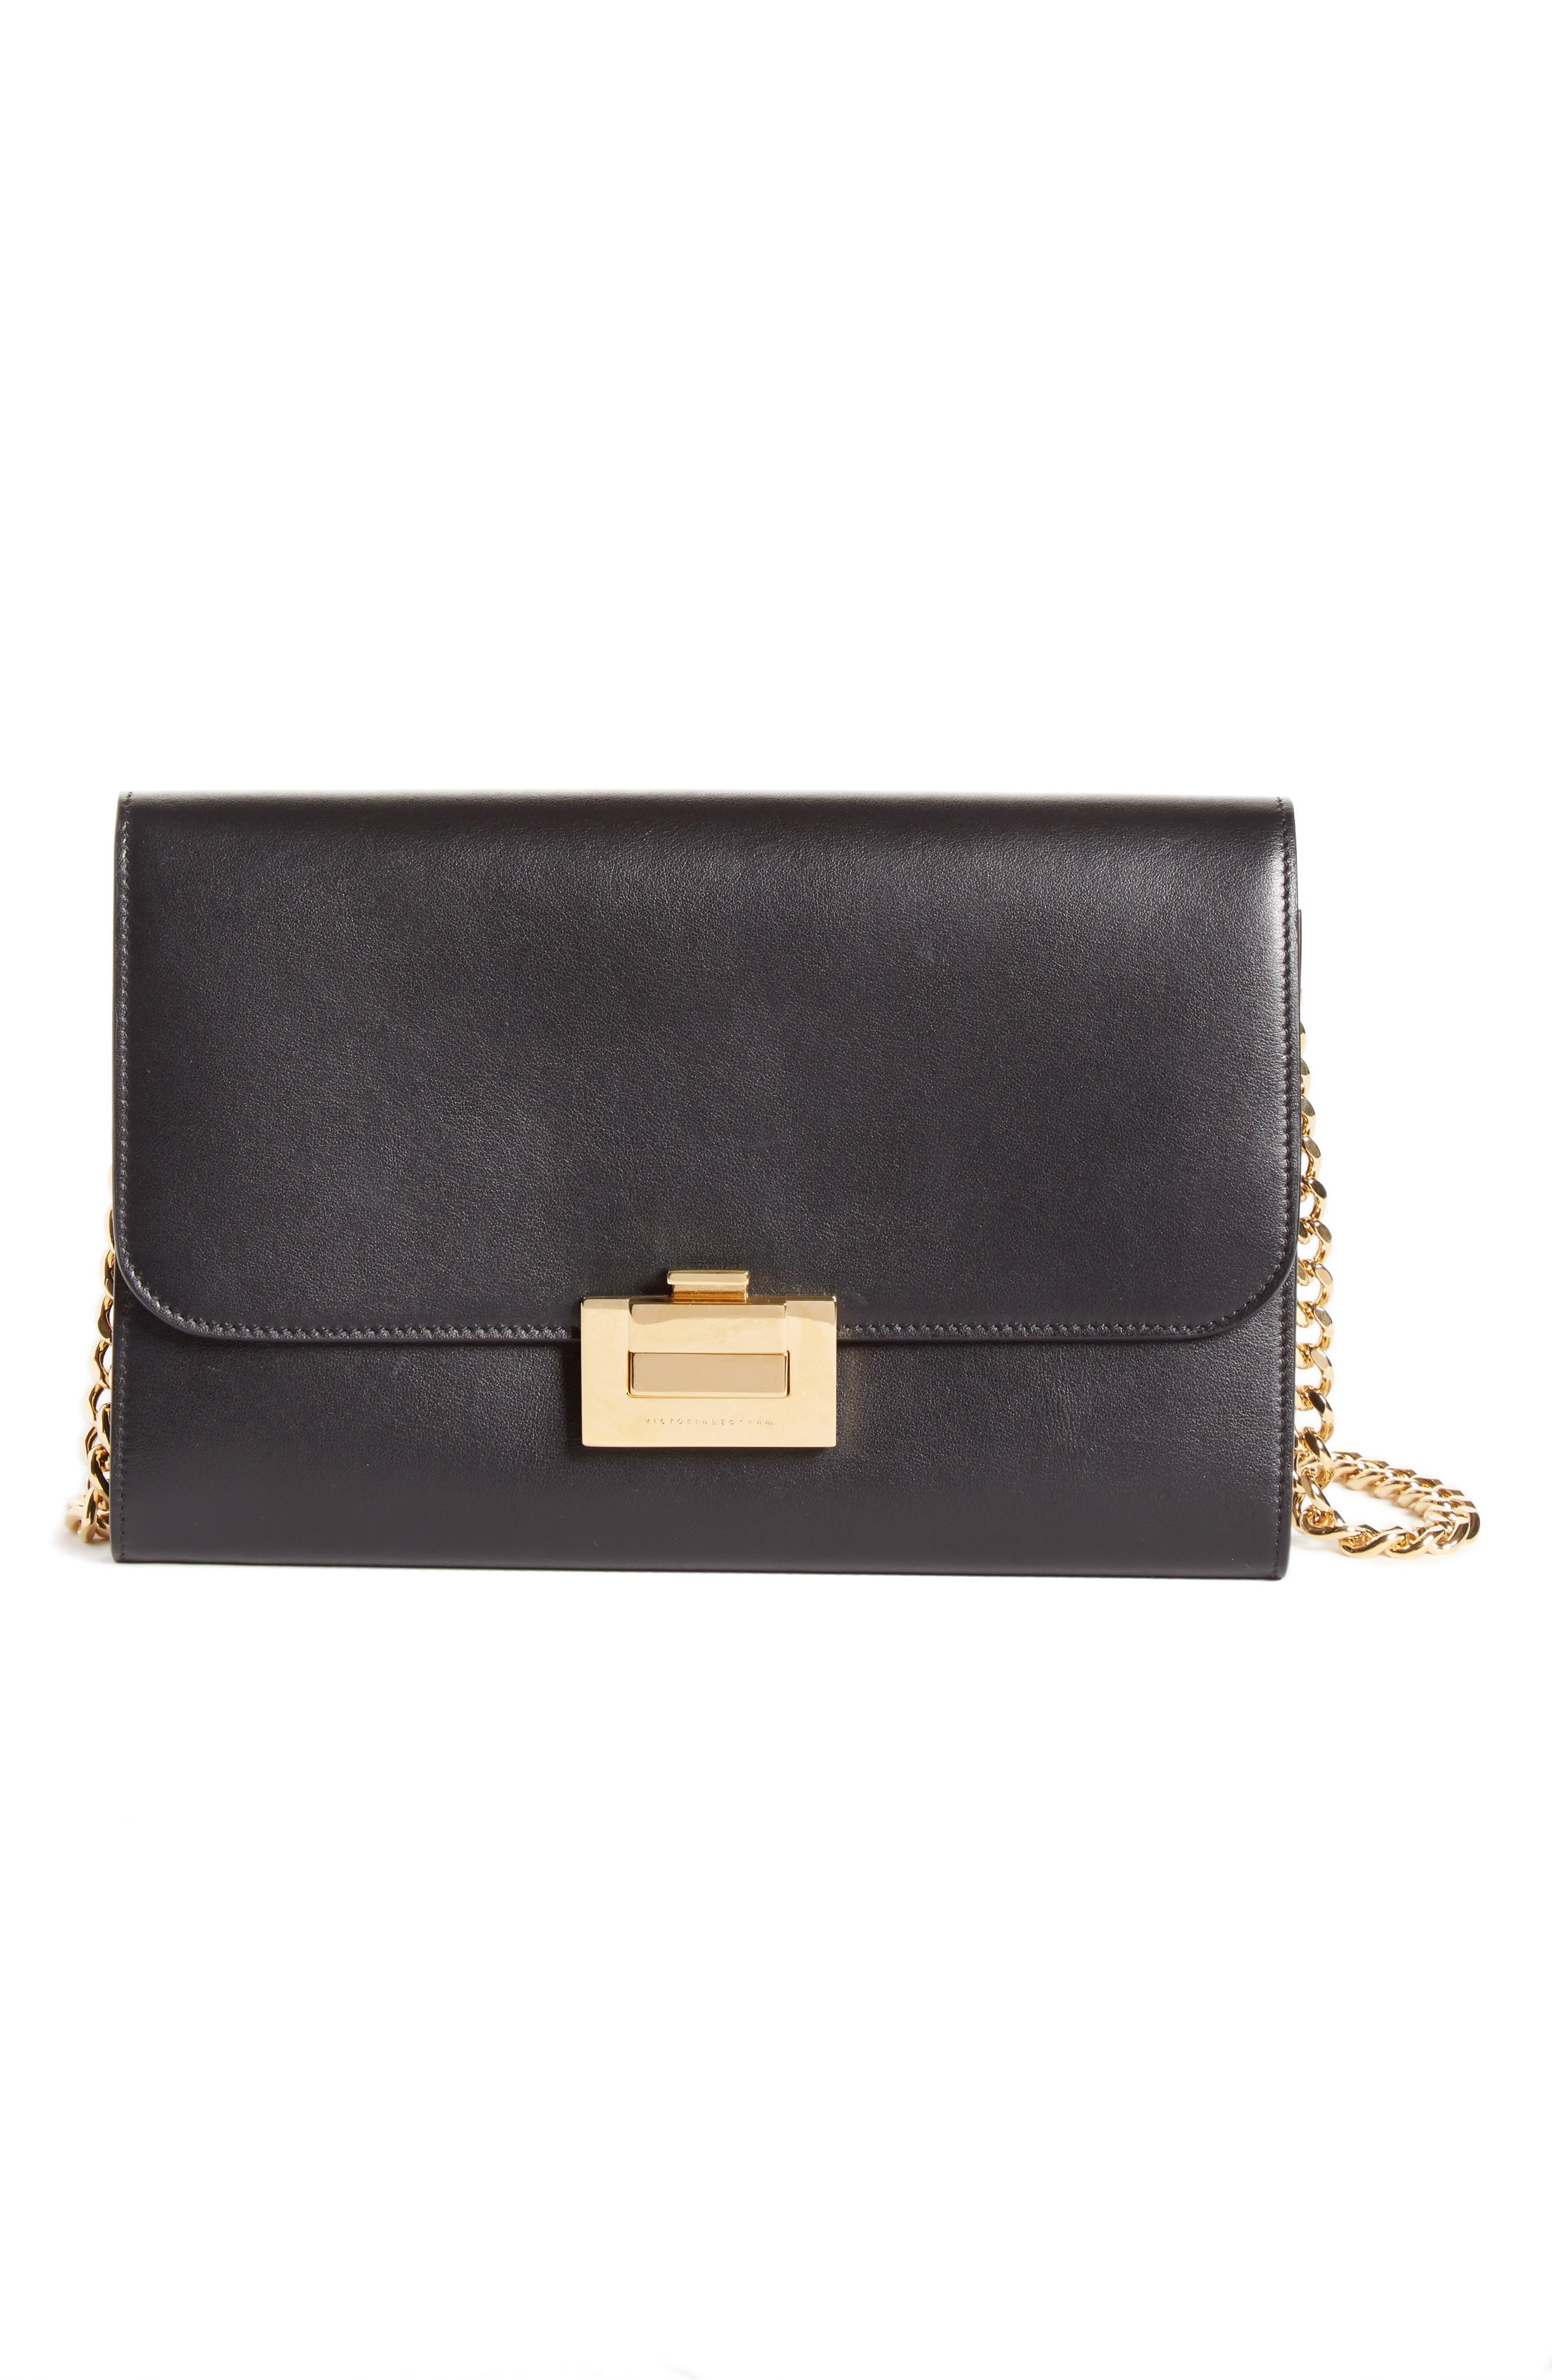 Main Image - Victoria Beckham Leather Wallet on a Chain